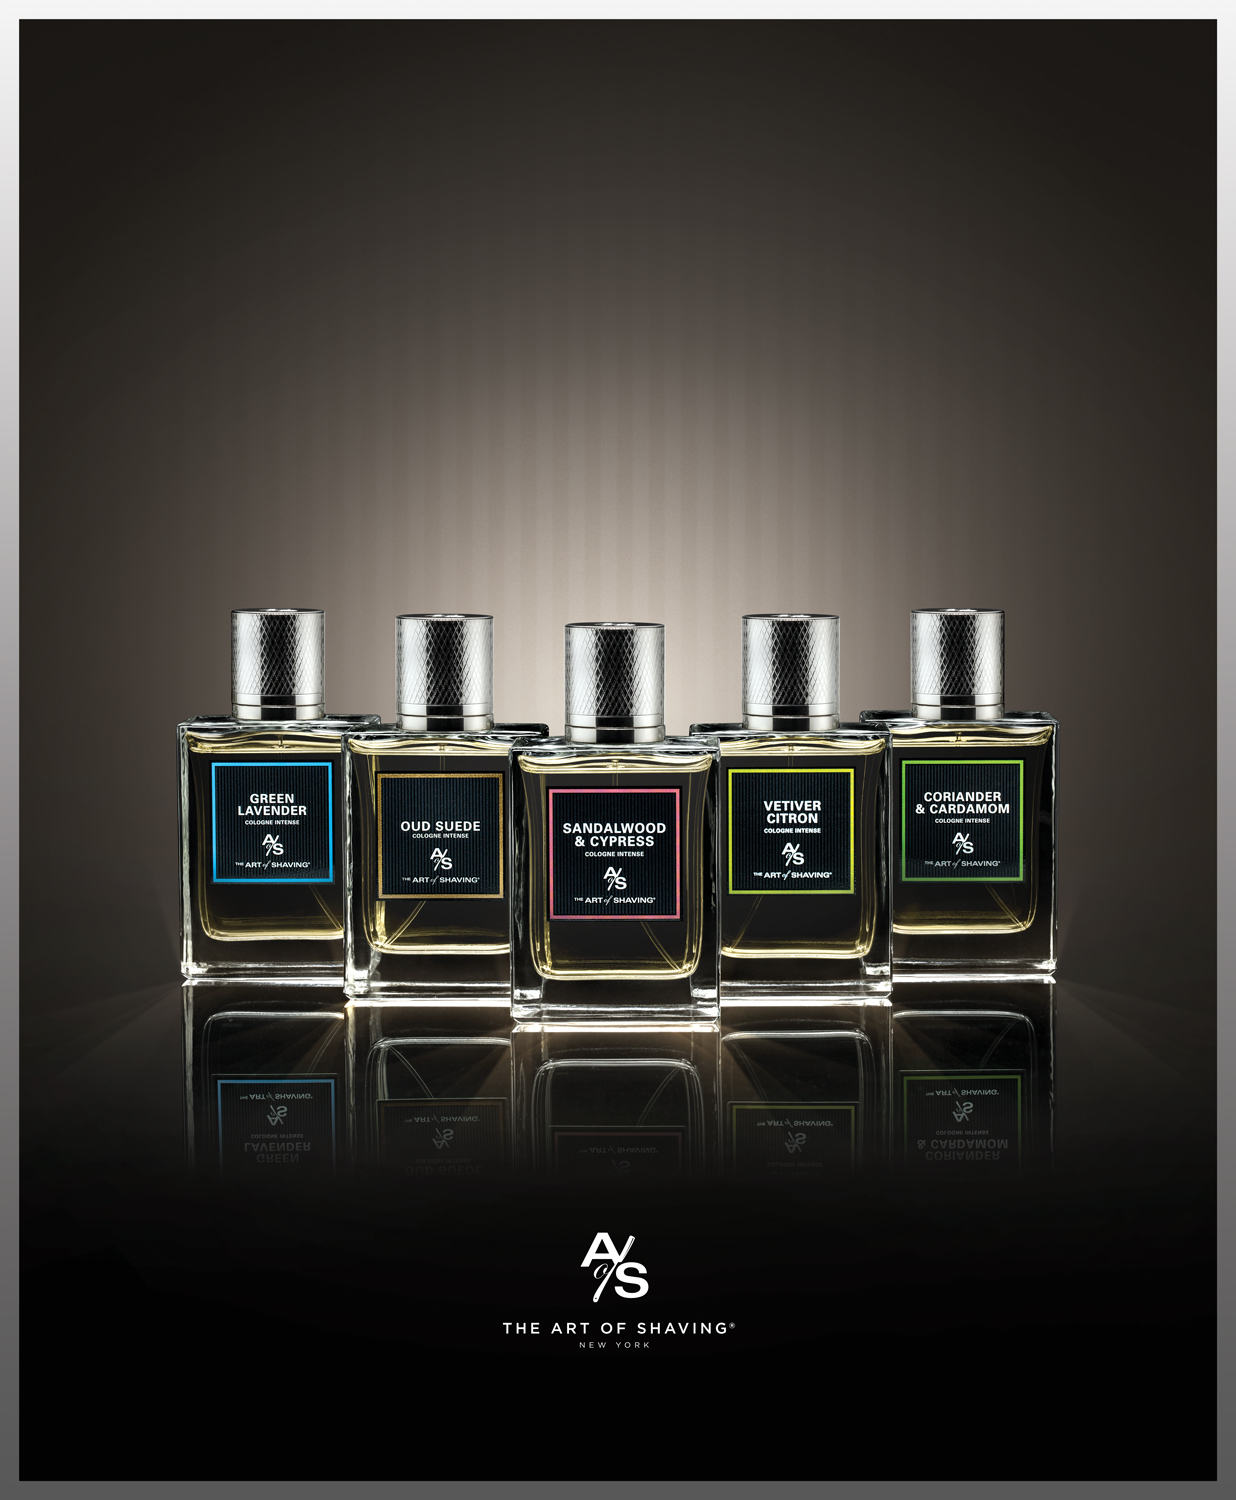 the-art-of-shaving-launches-new-fragrance-collection-photo-business-wire